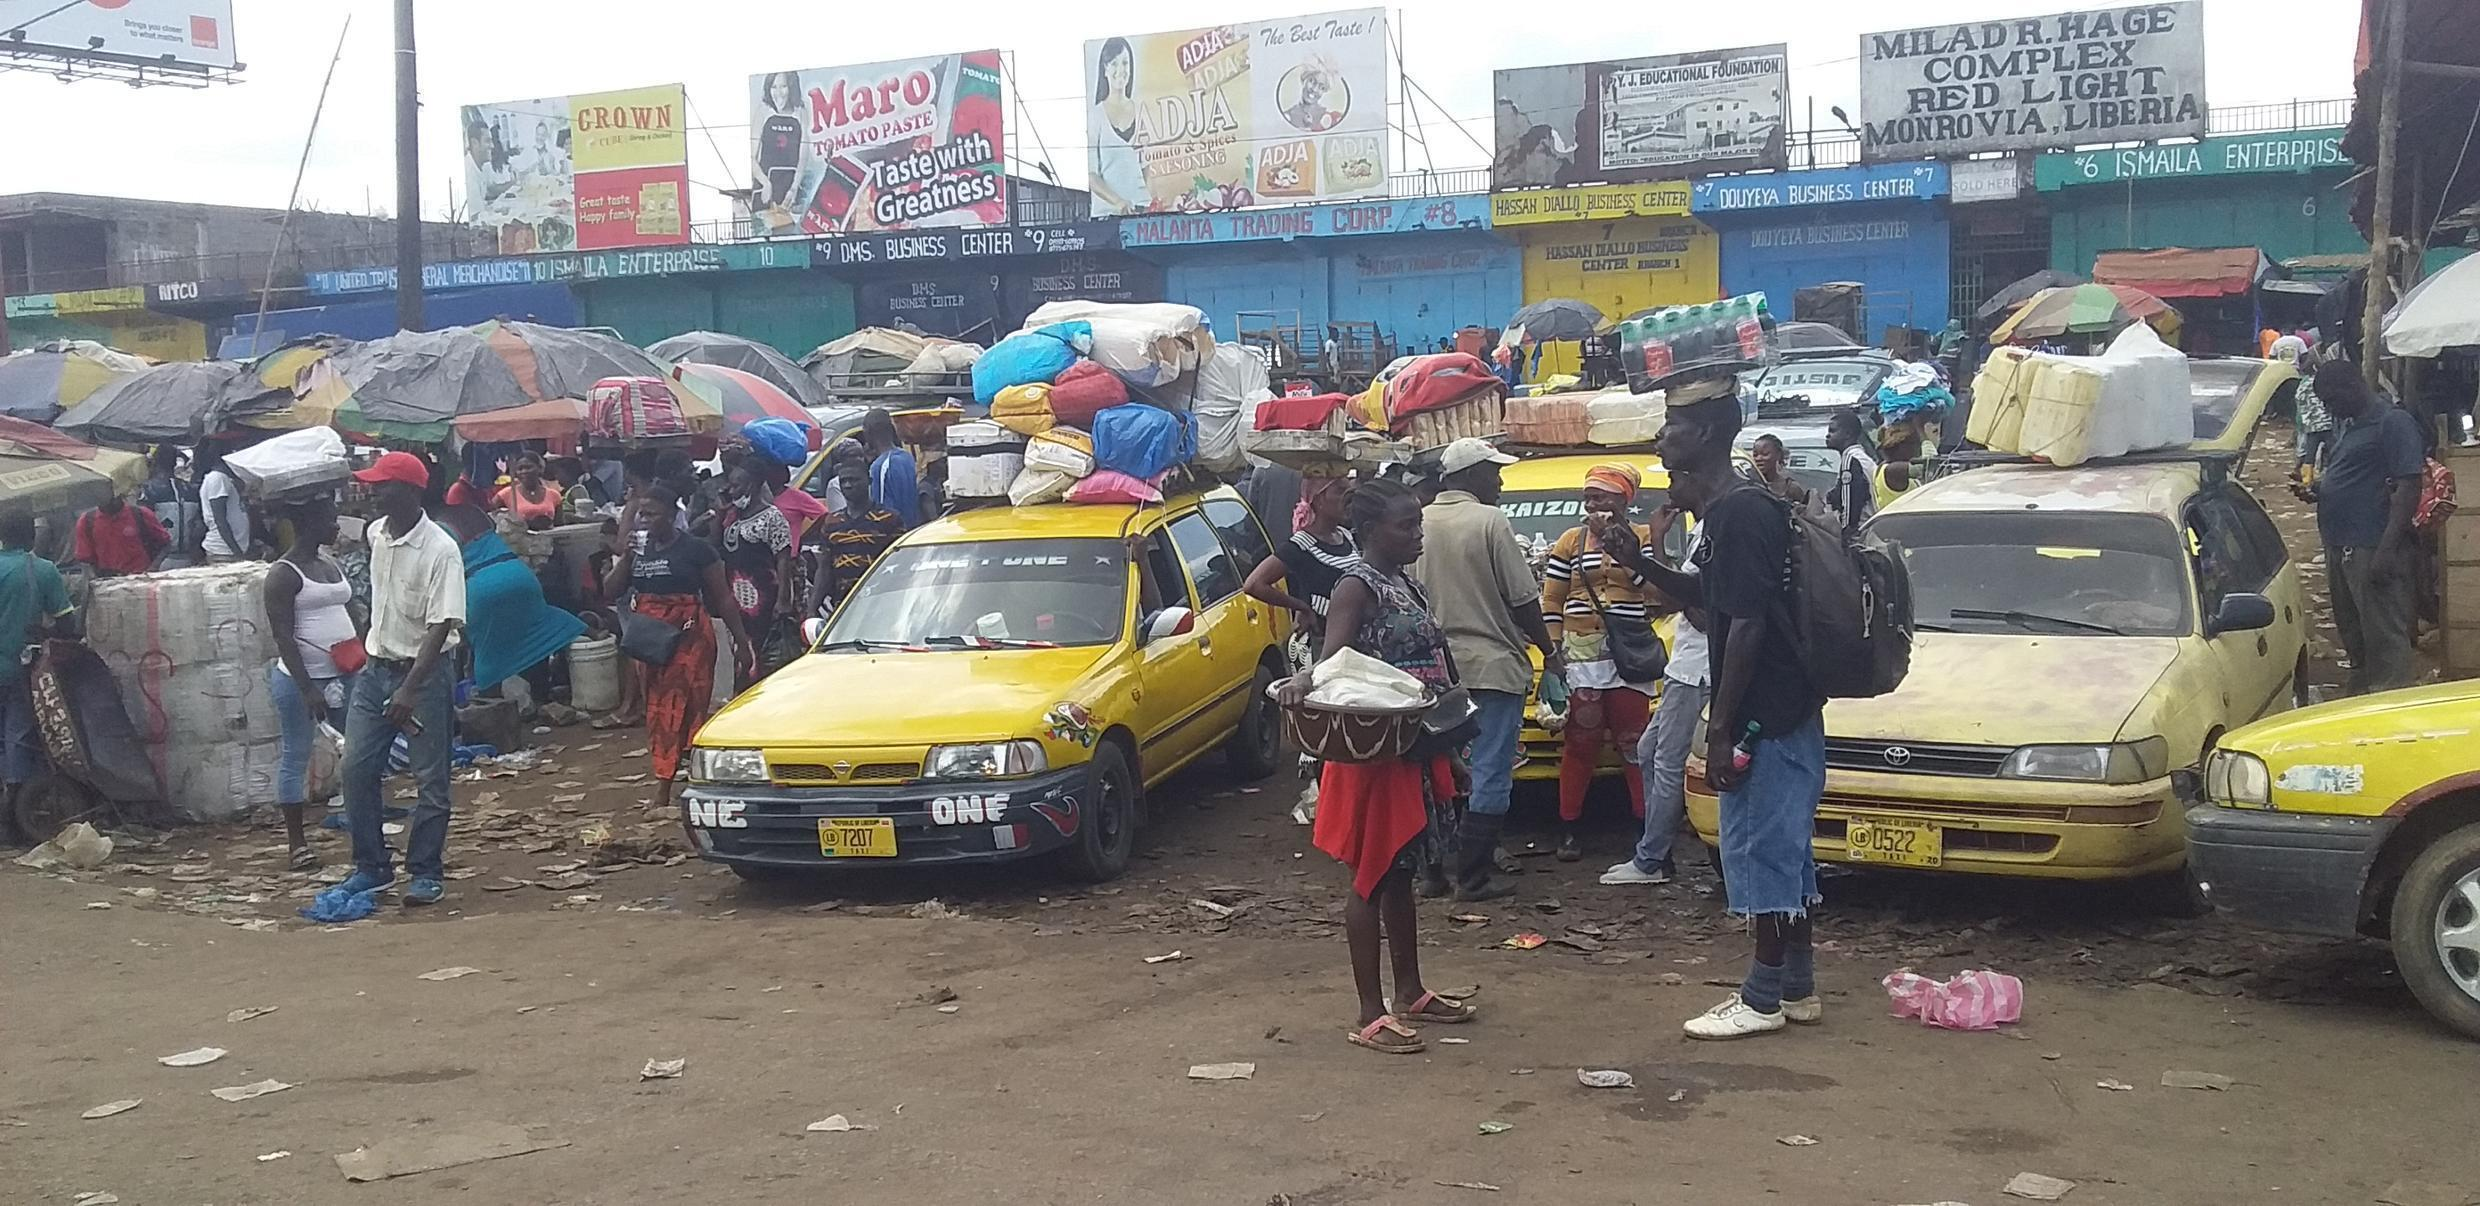 Taxis are piled high at Red Light parking station in Monrovia, Liberia, as many prepare to flee the capital before Covid-19 lockdown